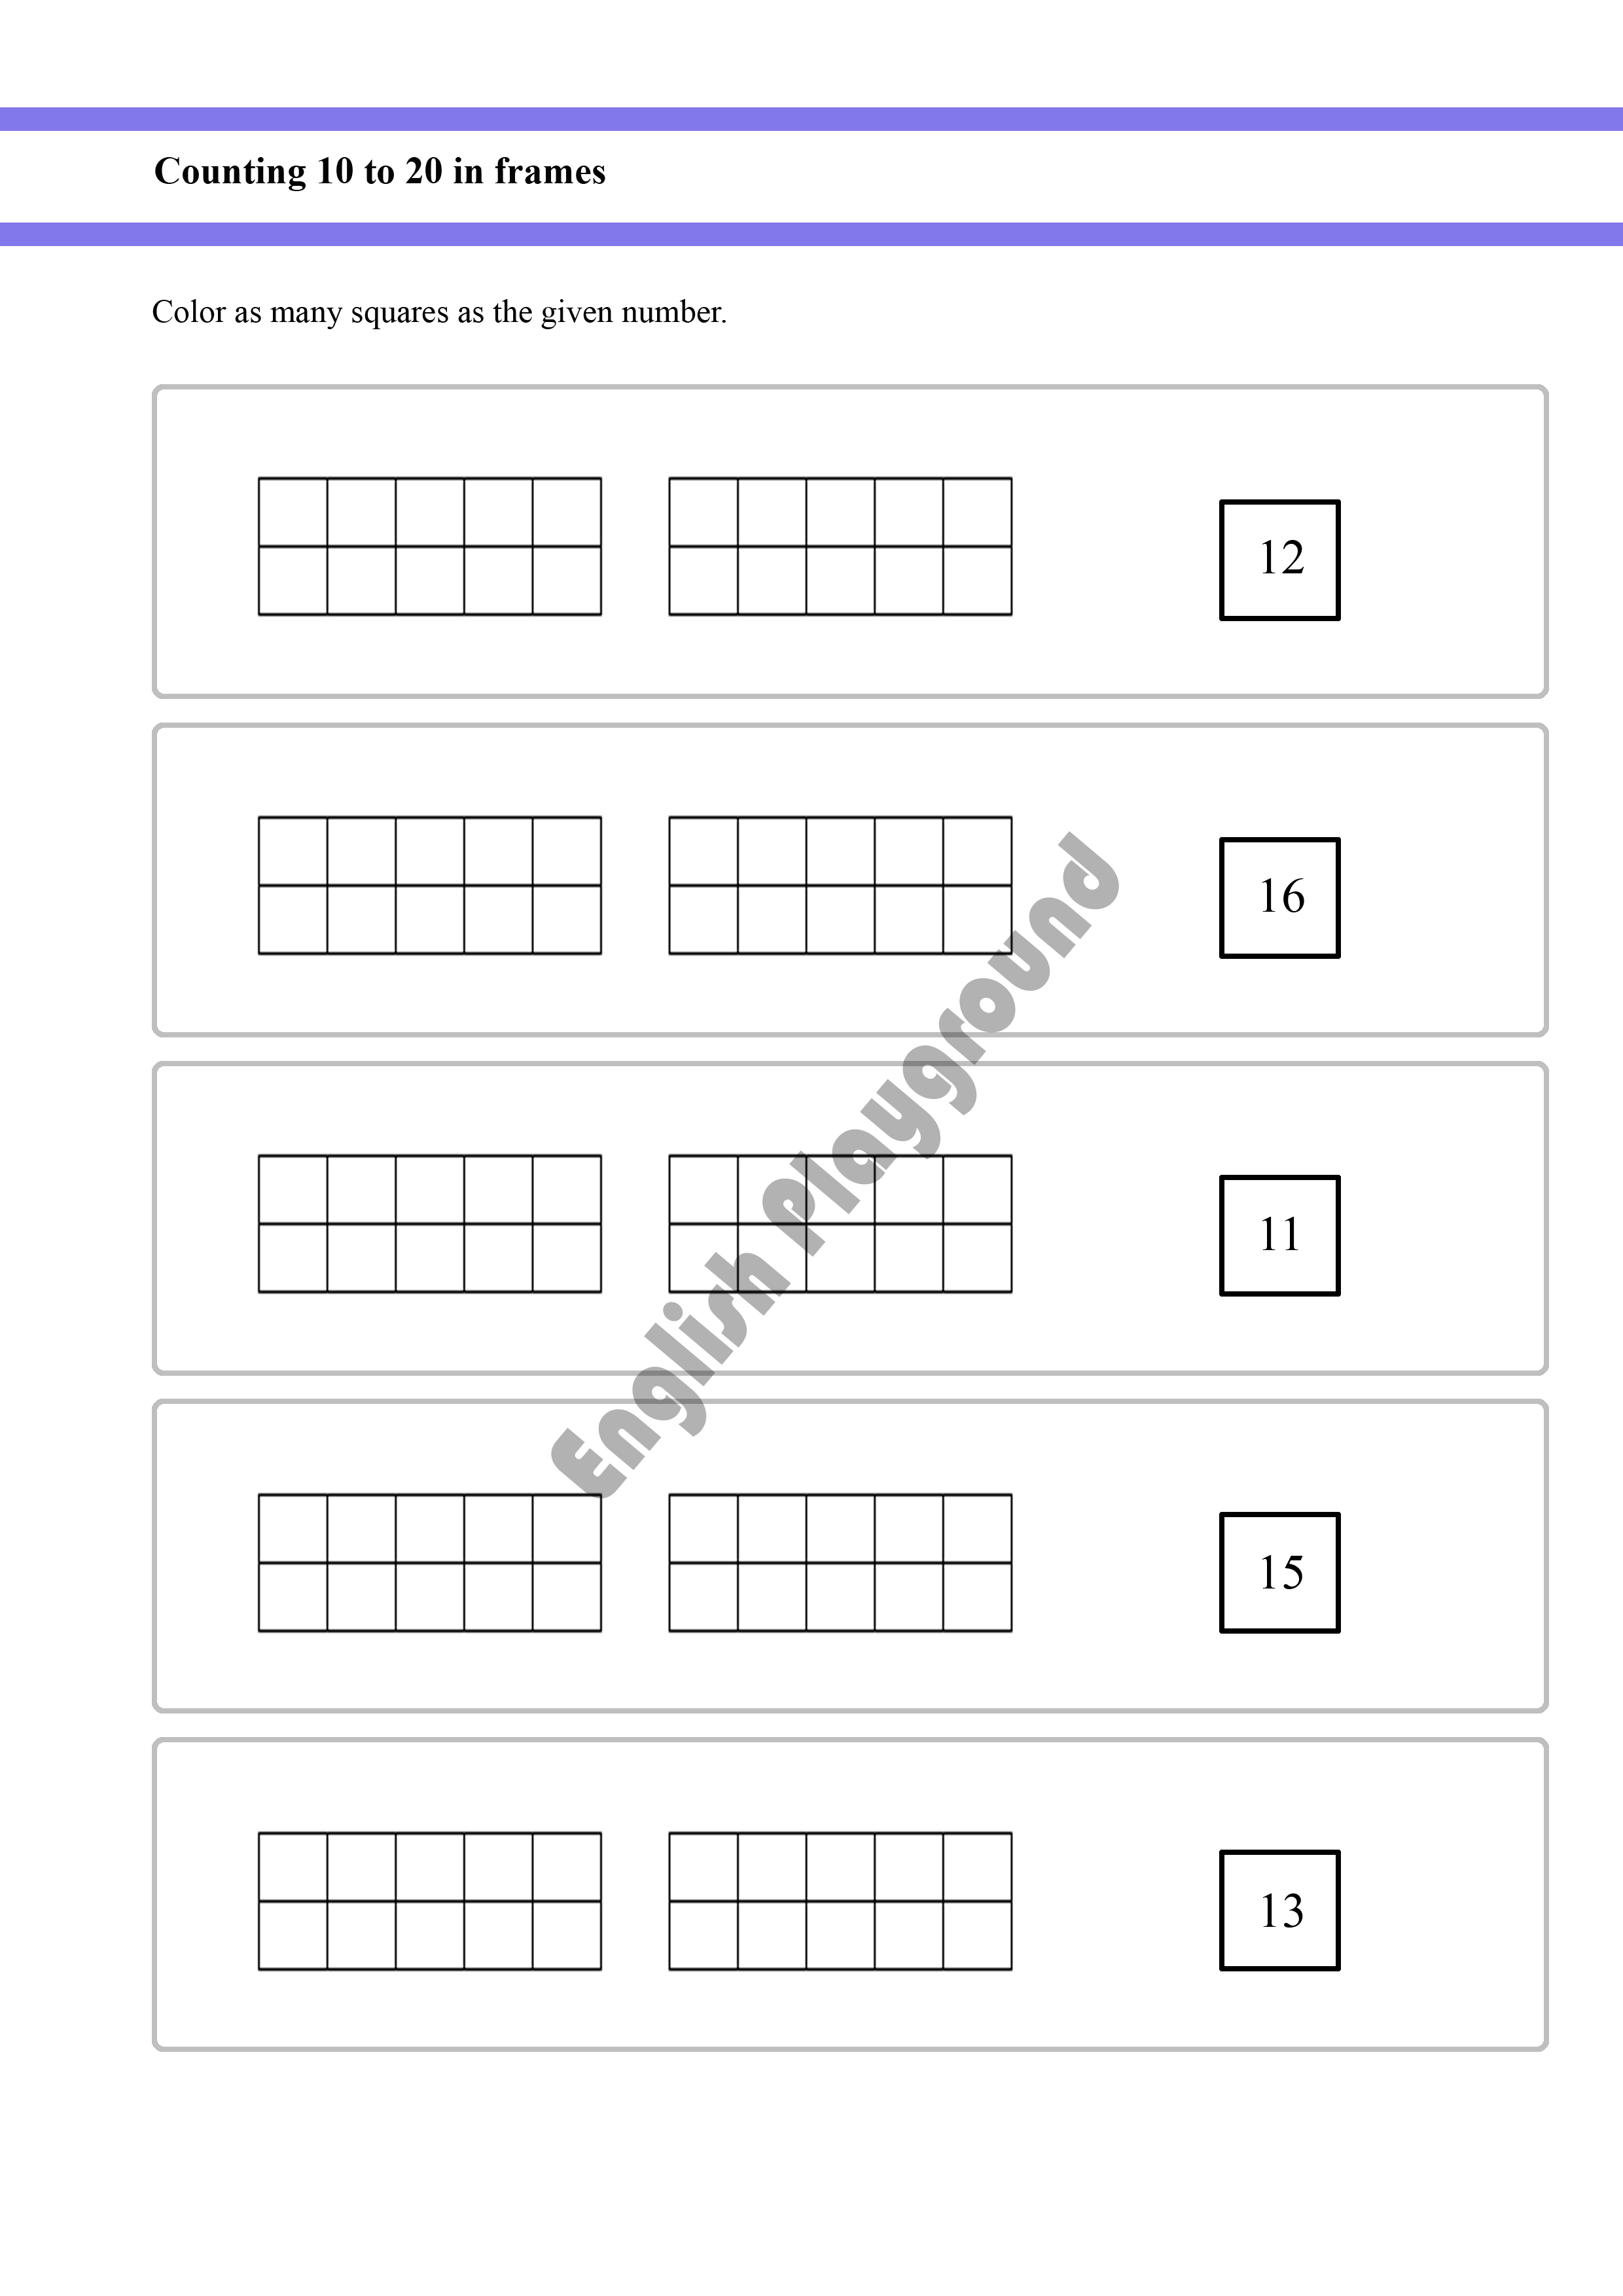 Counting Up To 20 Using Frames For Year 1 And Year 2